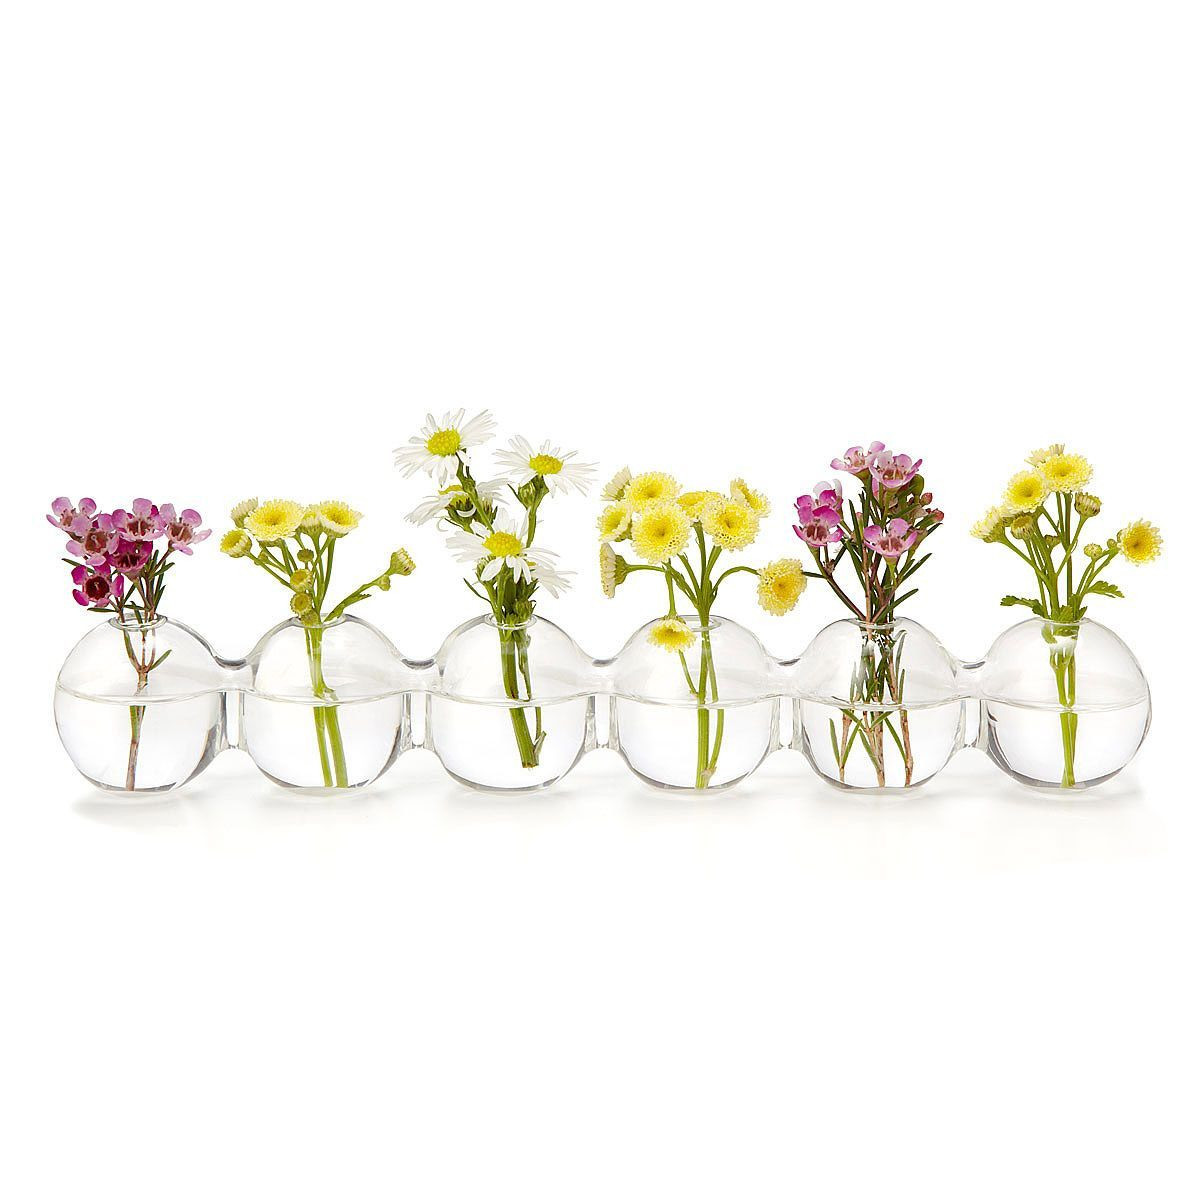 ceramic bud vases wholesale of caterpillar bud vase bulbs display and glass with this bud vase with a row of attached glass bulbs allows you to create elegant floral displays